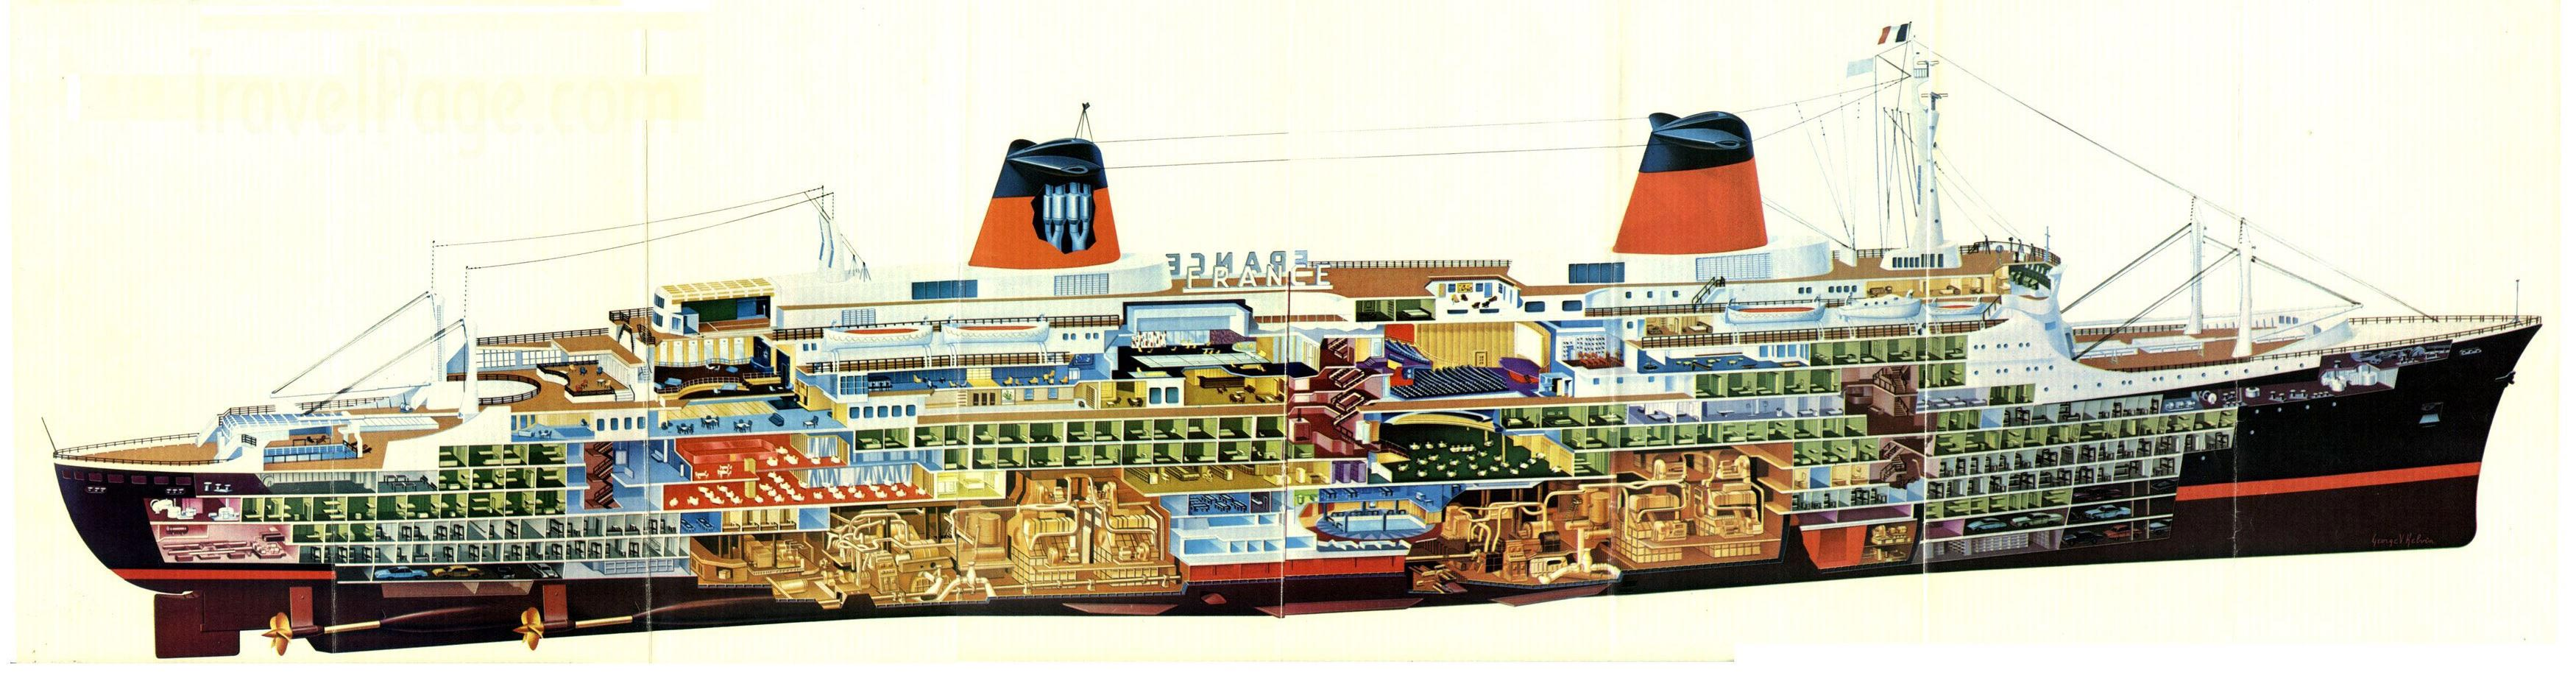 Ss france liner 1961 cutaway drawing in high quality for Design hotel normandie france